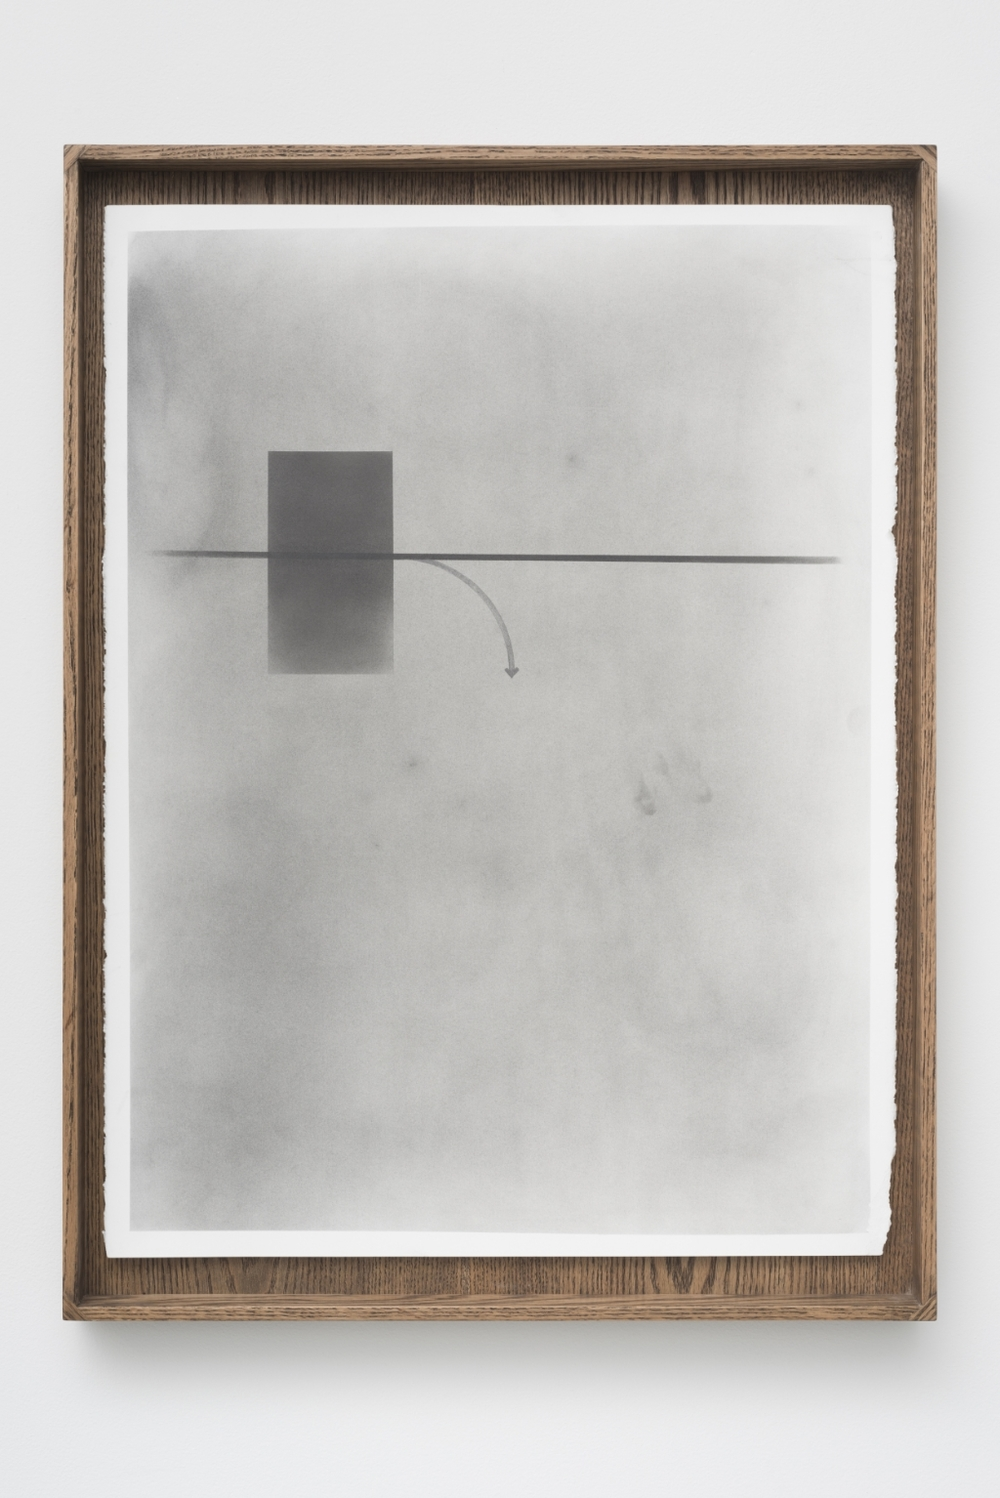 Untitled Diagram No. 14, from Diagrams with my Father, 2014 Graphite on paper in artist made oak frame, 83.82 x 60.96 x 6.35 cm, Image courtesy of the artist and Monique Meloche Gallery, Chicago